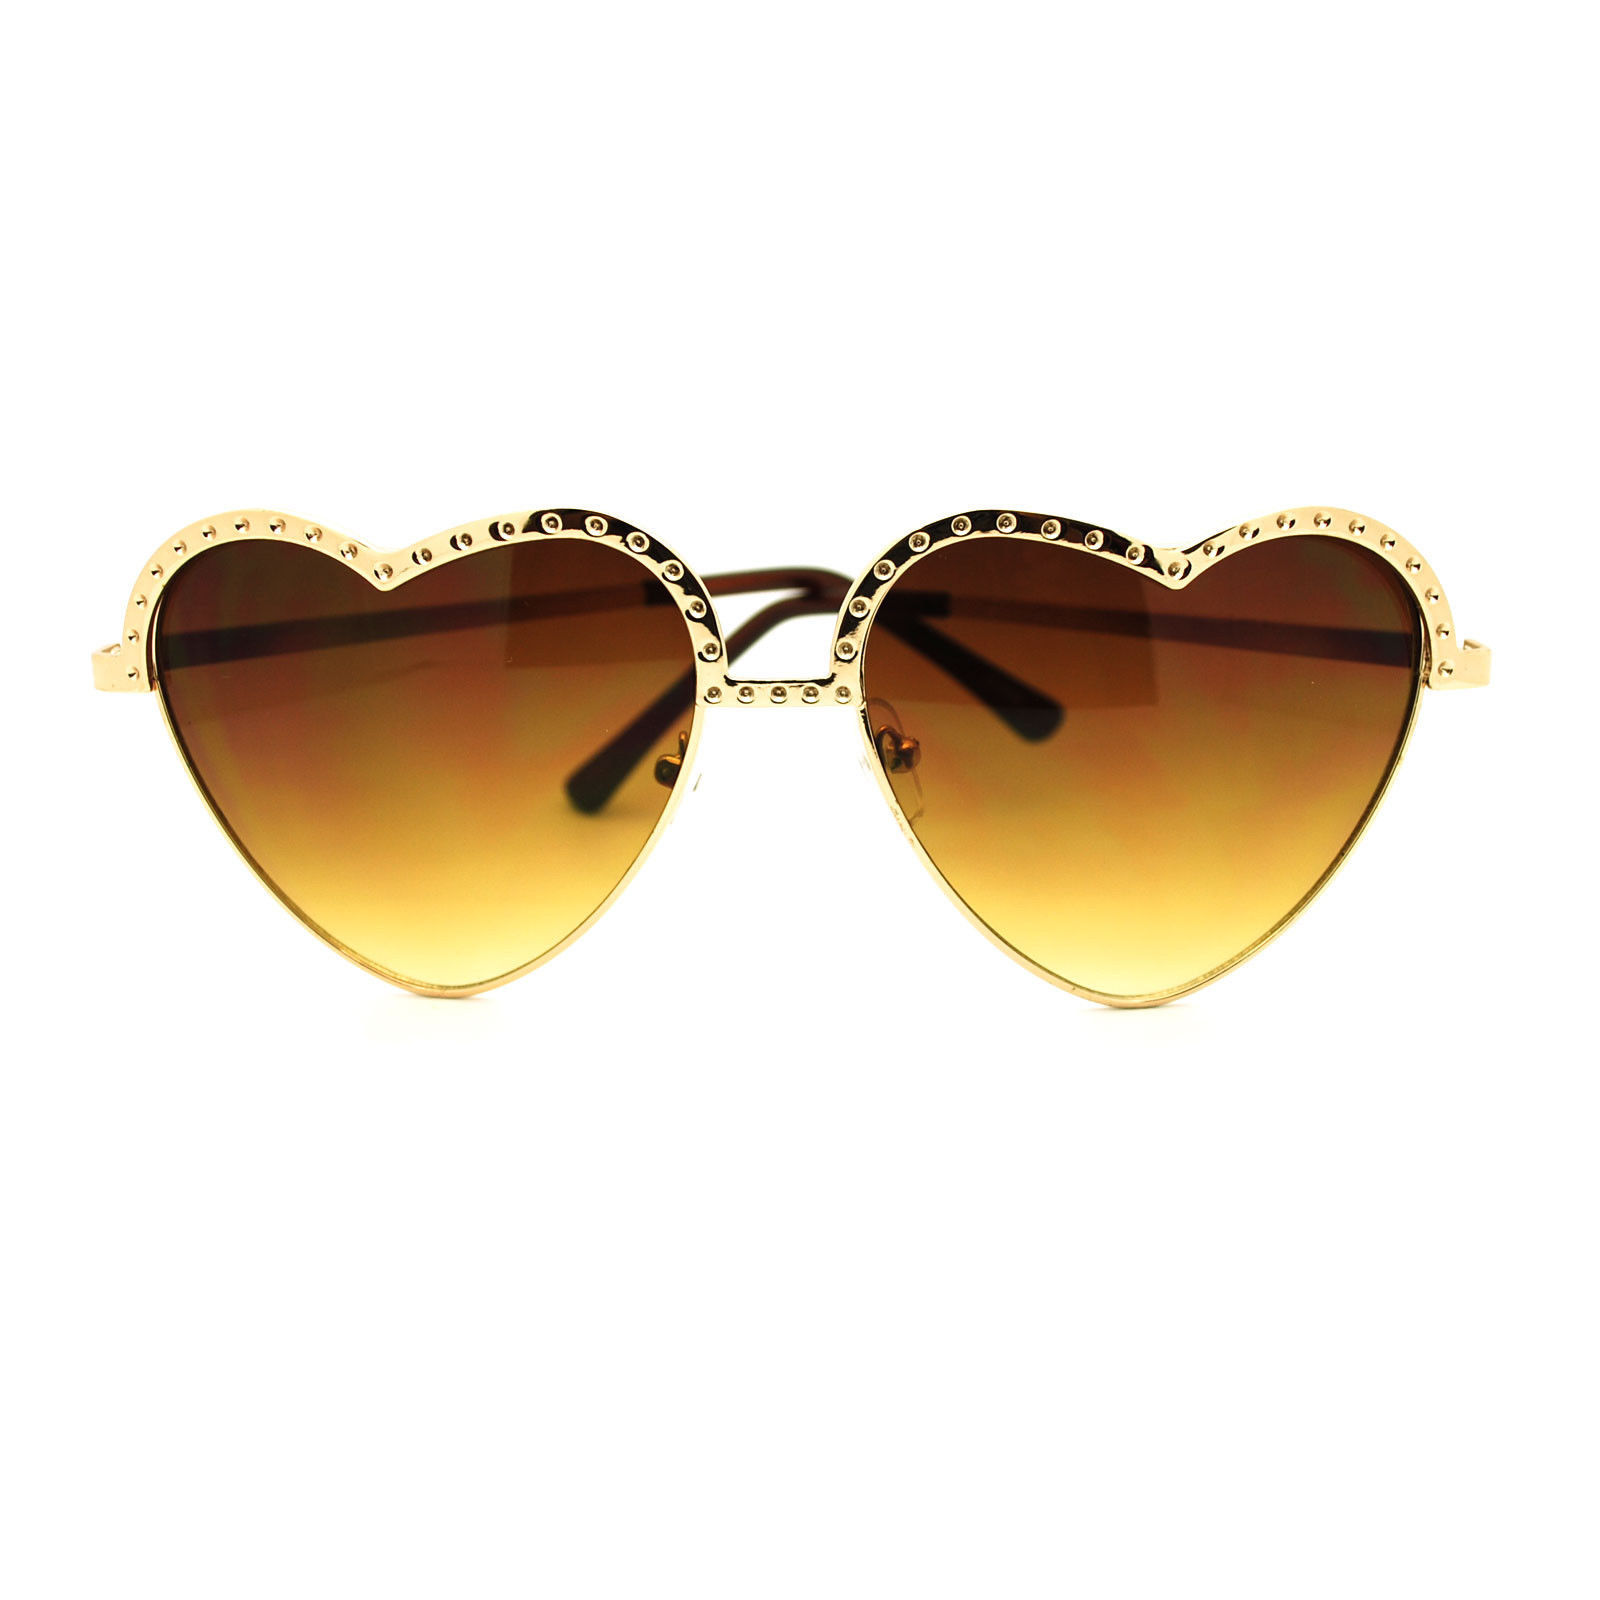 New Metal Bling Half Rim Heart Shape Cute Love Girly Fashion Sunglasses